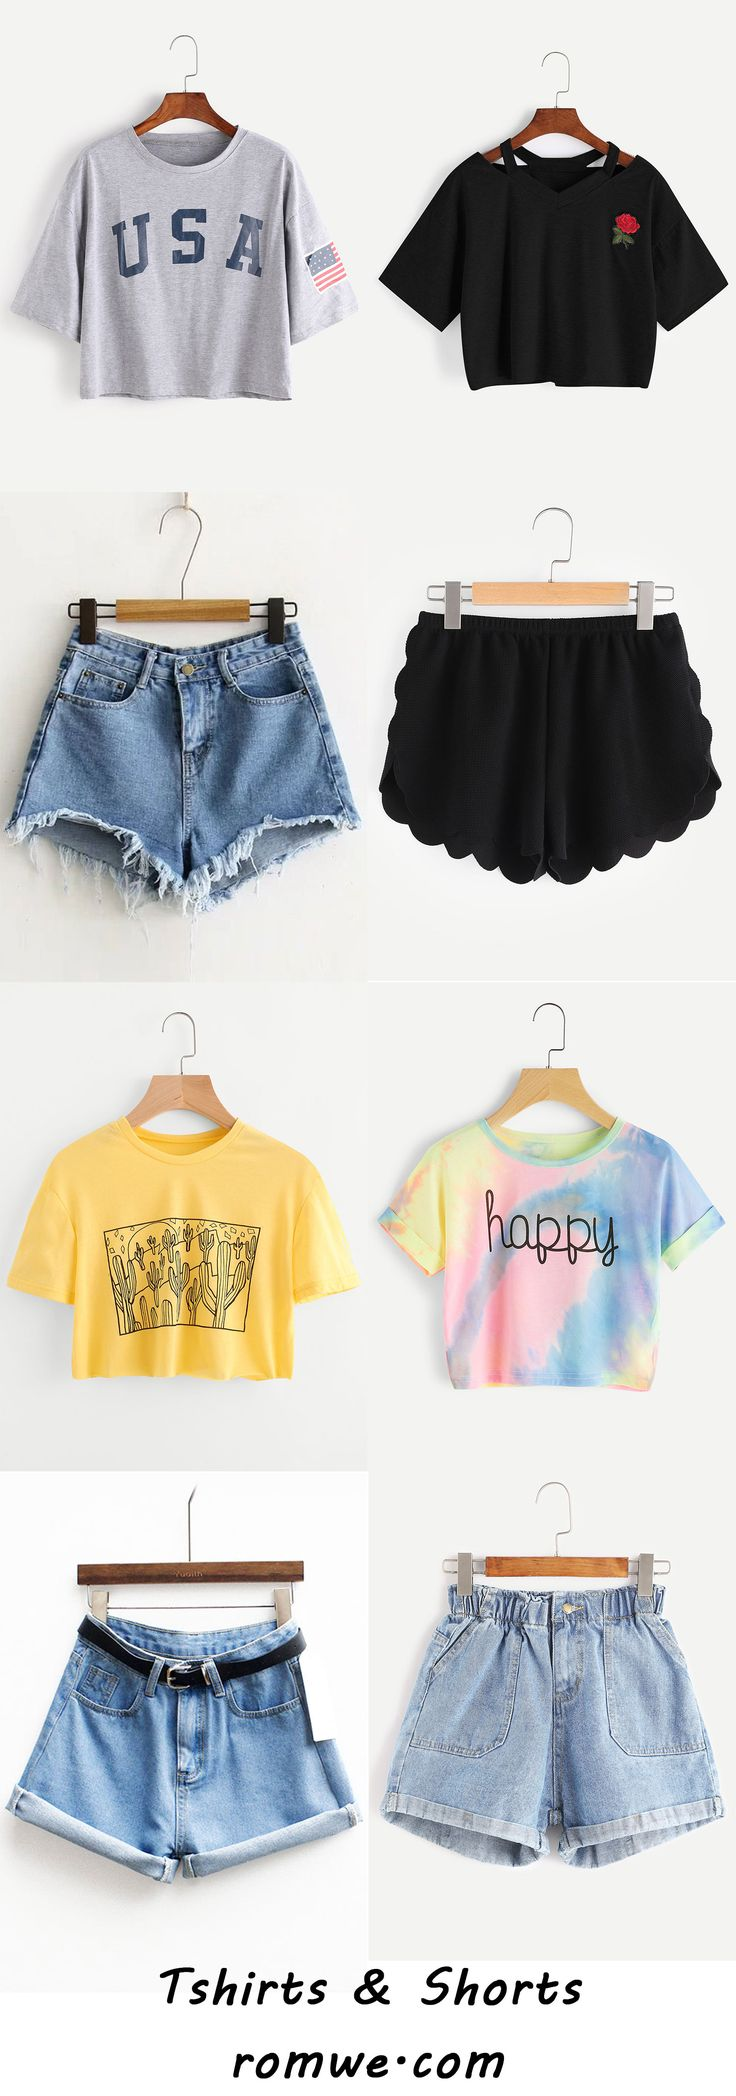 Summer Must -have - T shirts and Shorts from romwe.com